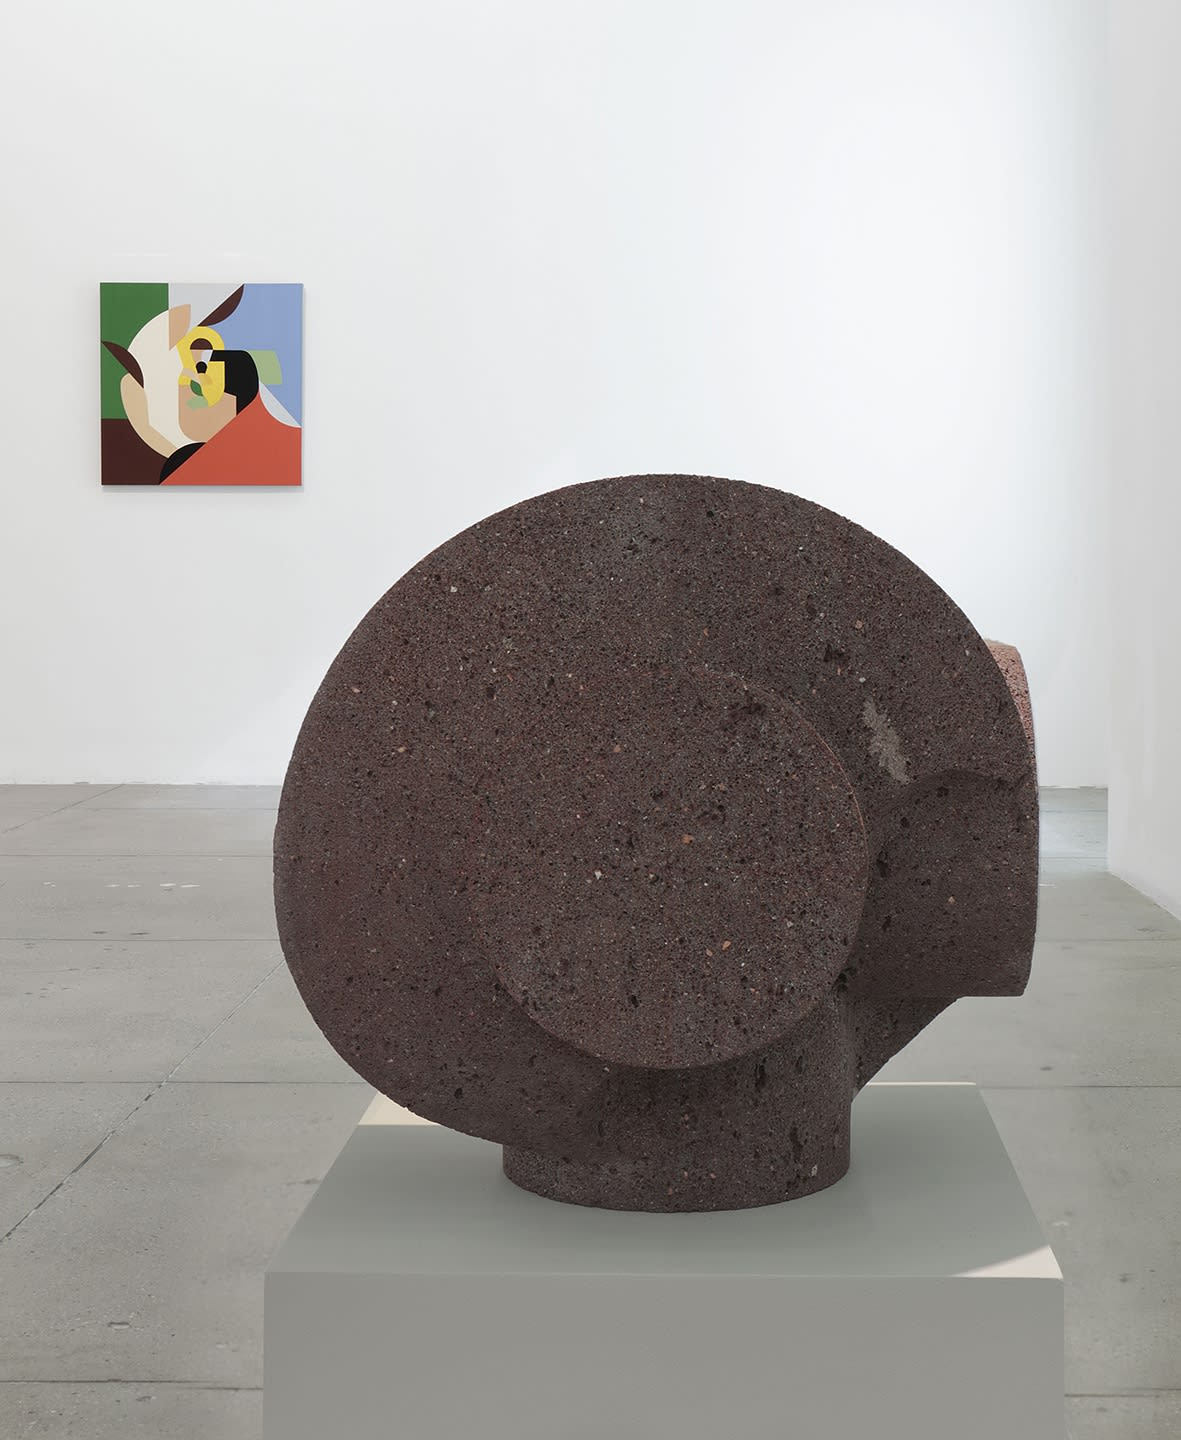 1 small stone sculpture stands to the left of a colorful abstract painting on a white wall.